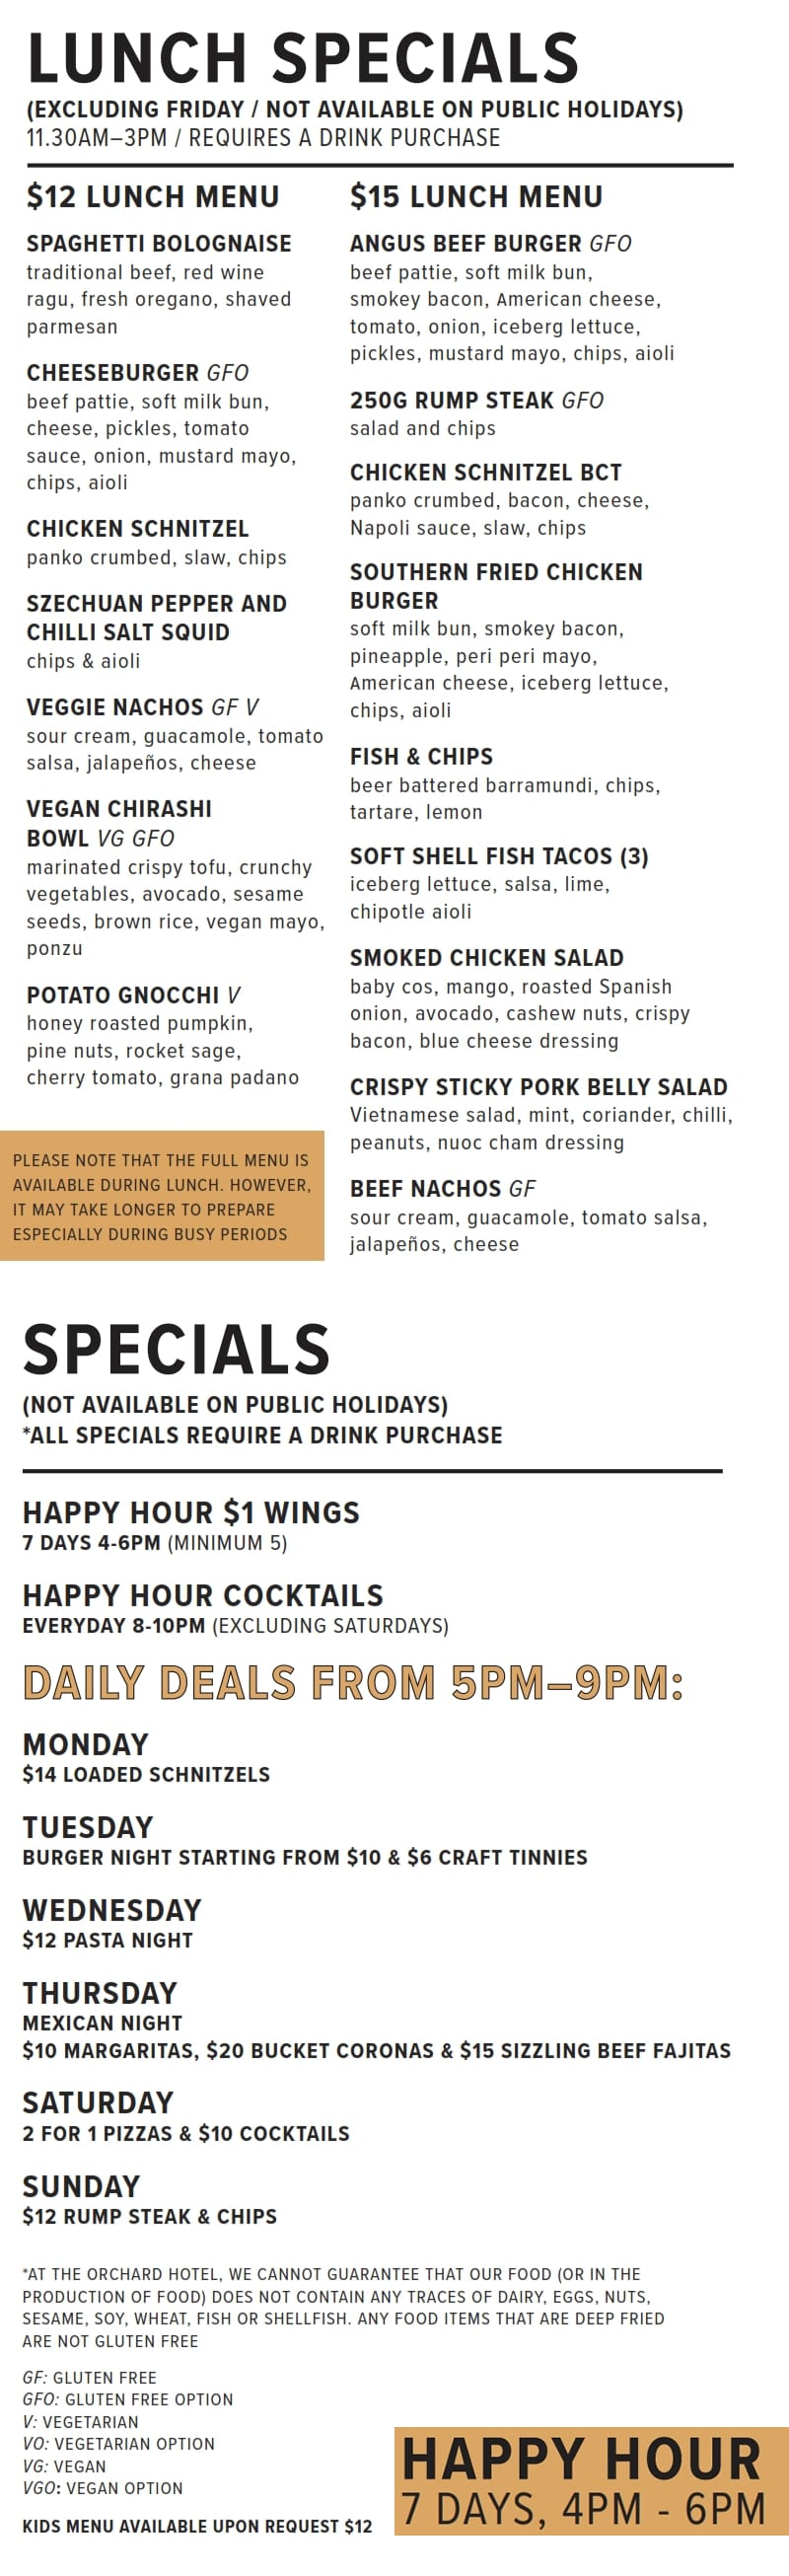 Lunch Specials 2020 01 09